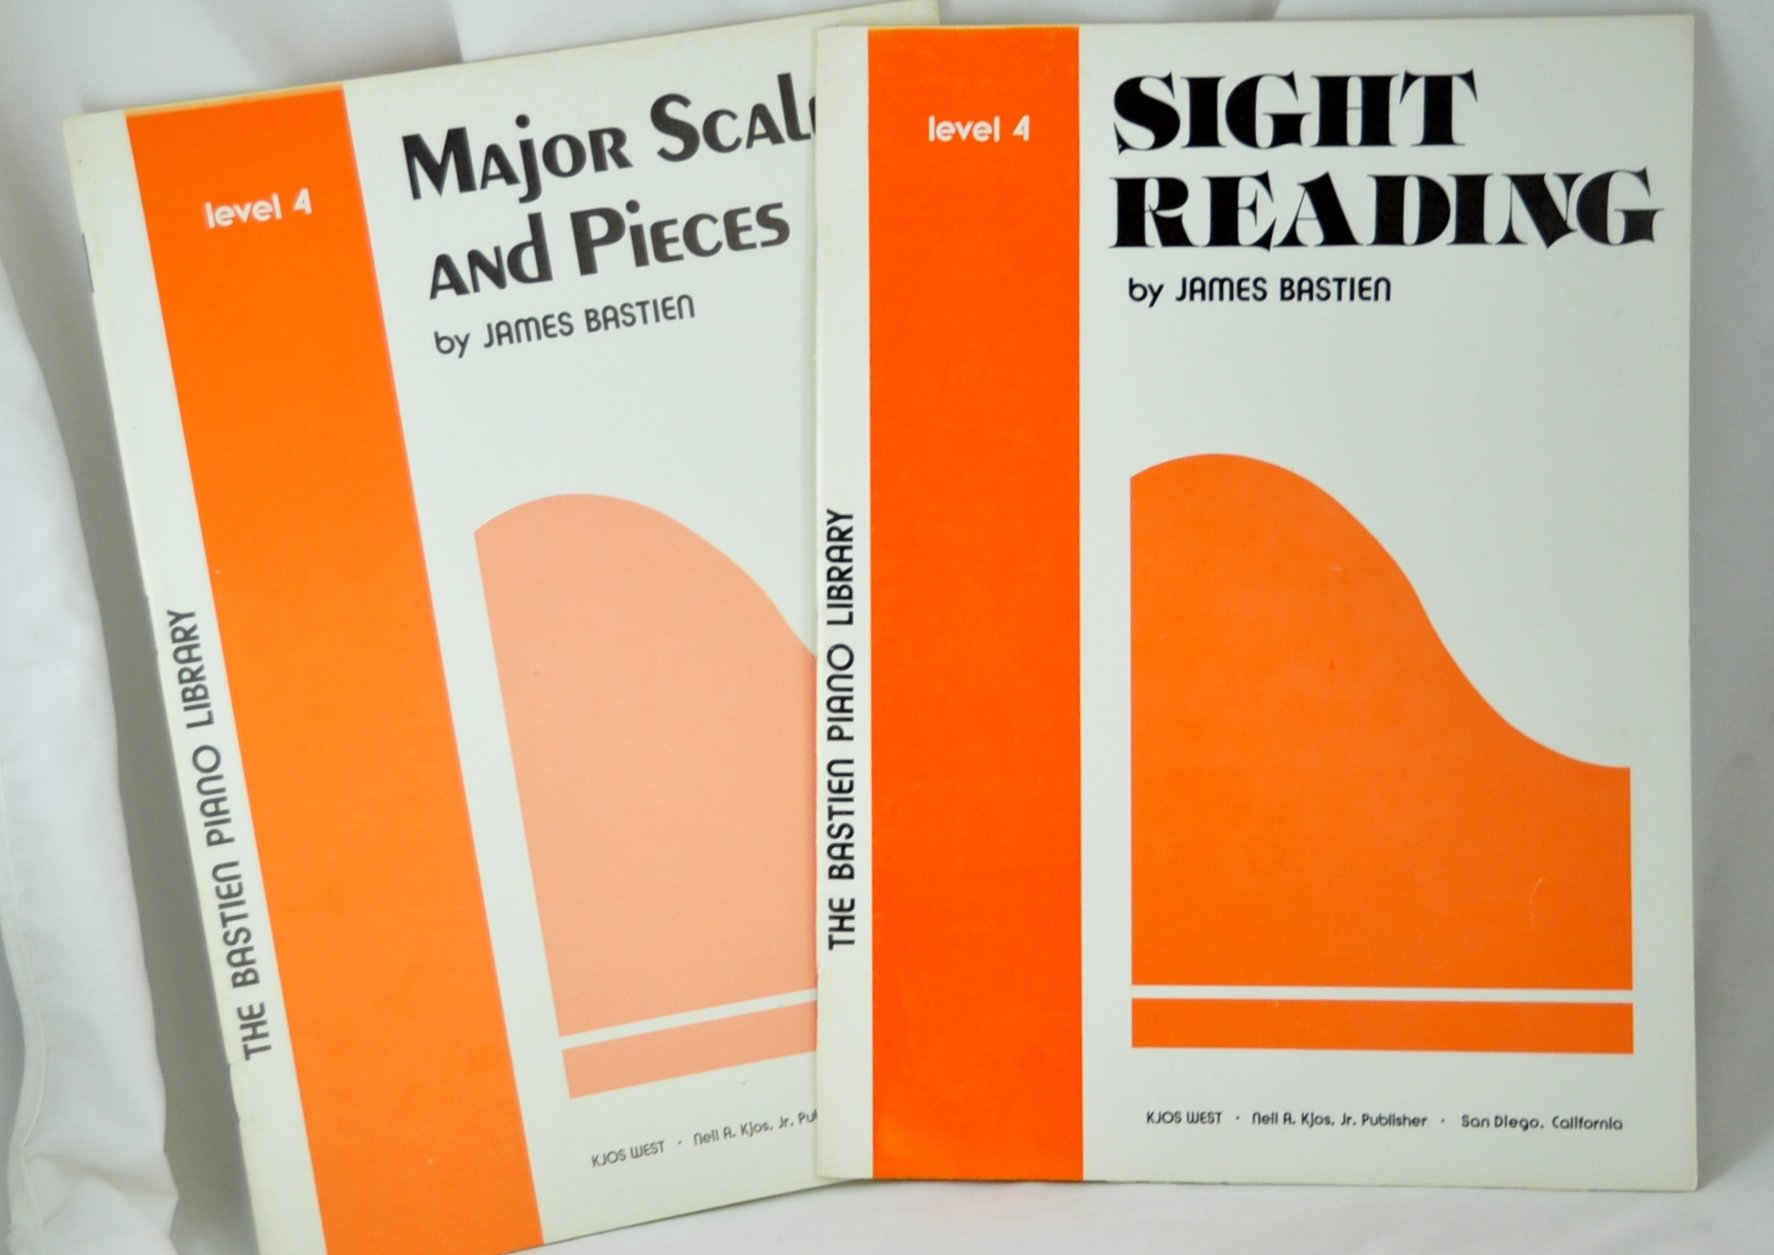 bastien piano library level 4 sight reading major scales and pieces set of 2 books